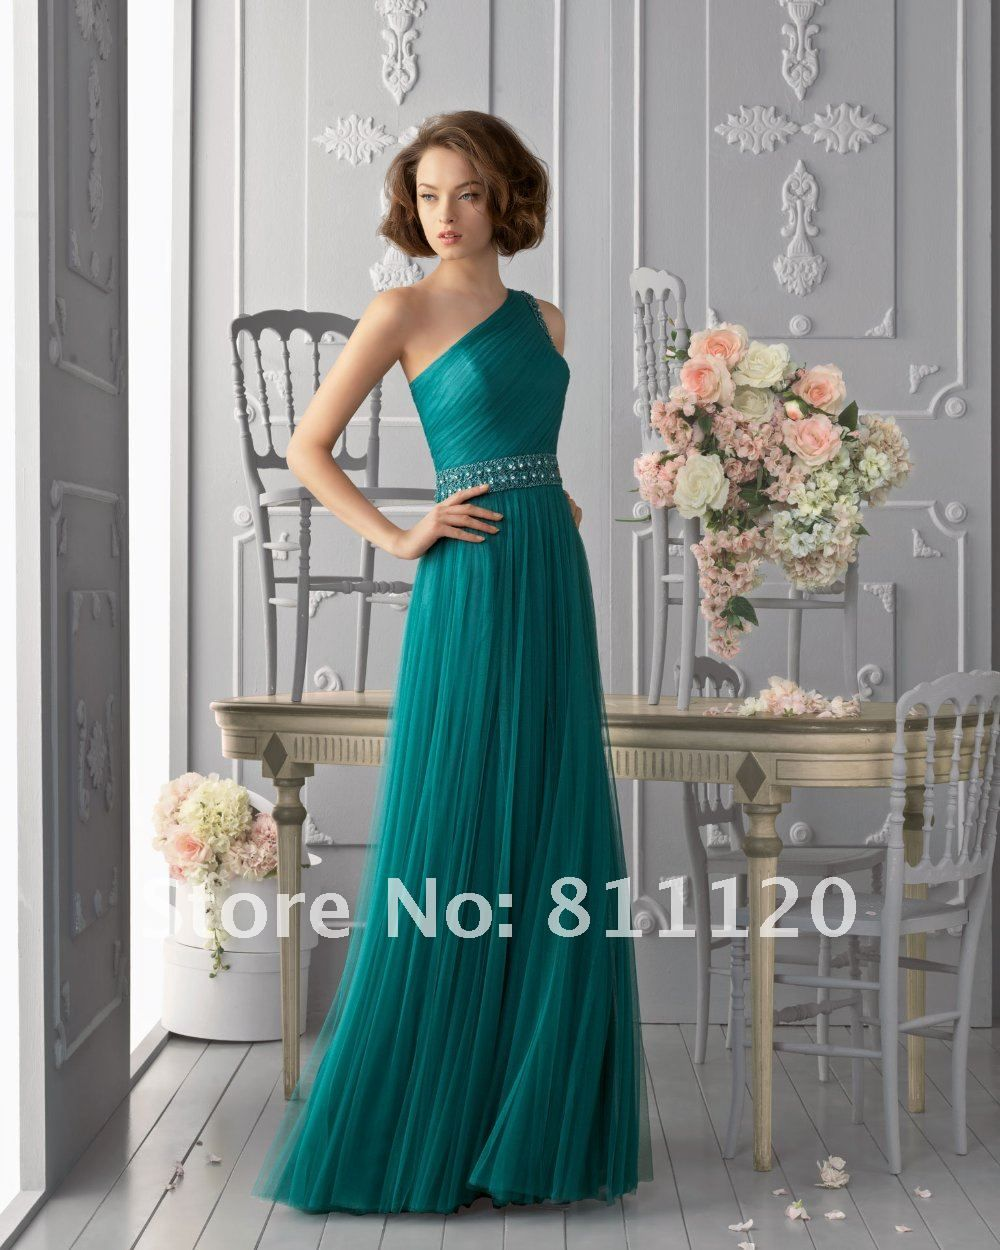 teal lace bridesmaid dresses | Teal Evening Gown Price,Teal Evening ...